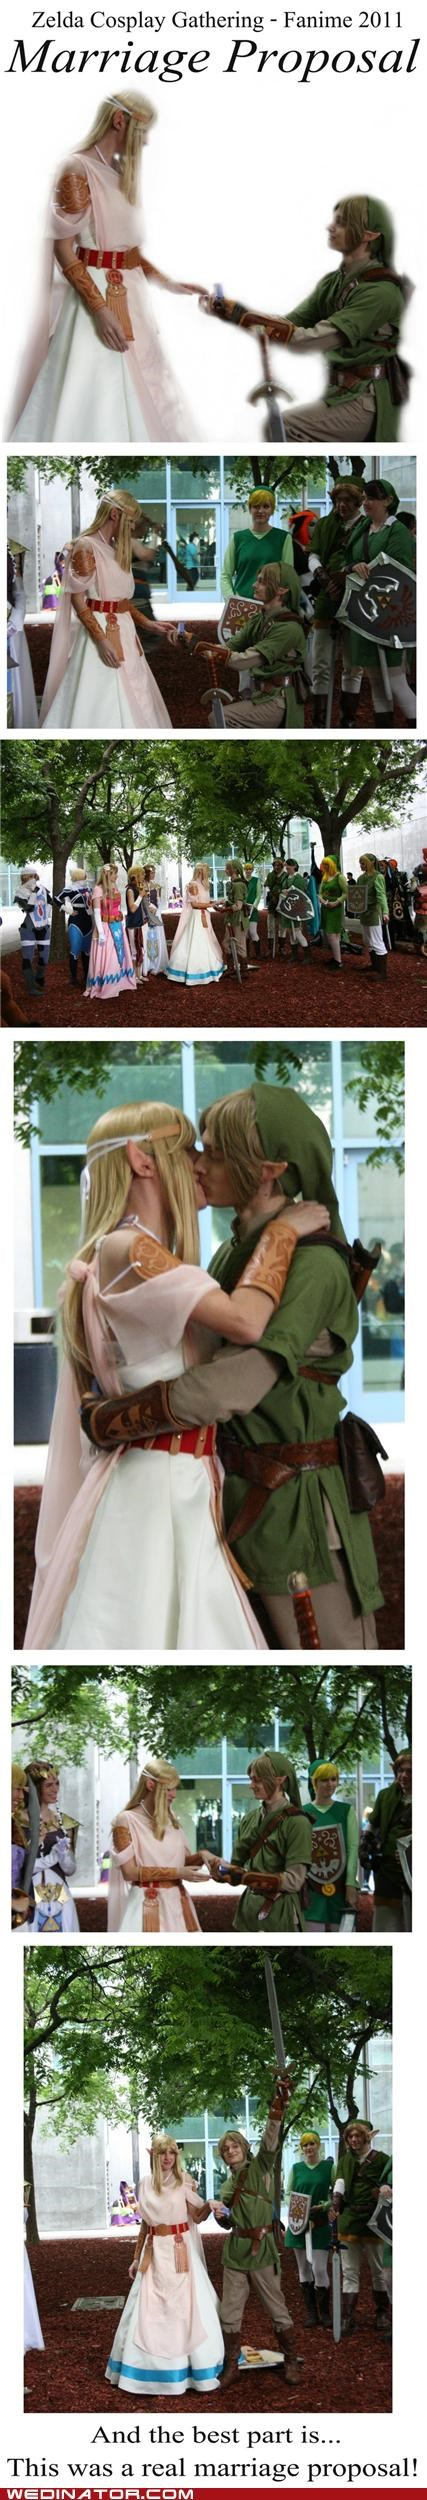 anime,funny wedding videos,geeks,proposal,the legend of zelda,zelda